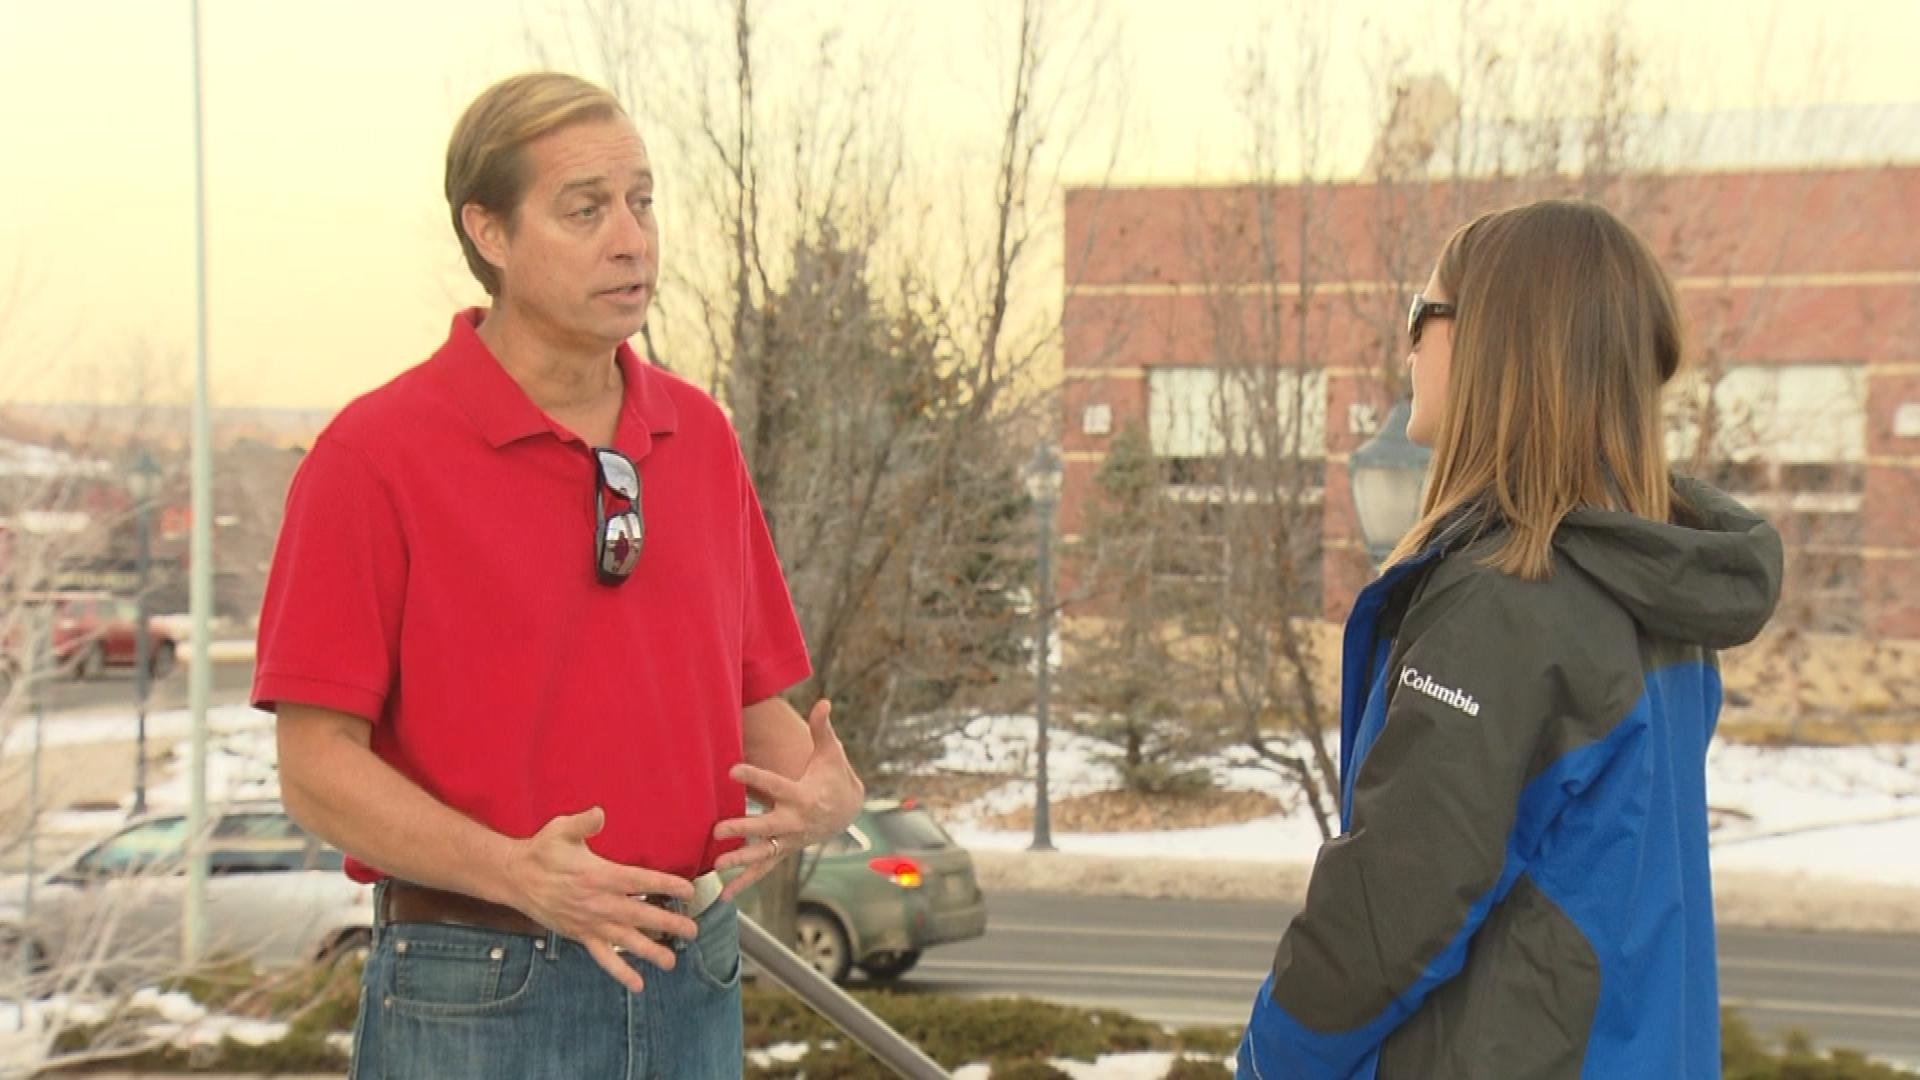 Denver marketing expert Darrin Duber-Smith is interviewed by CBS4's Lauren DiSpirito (credit: CBS)